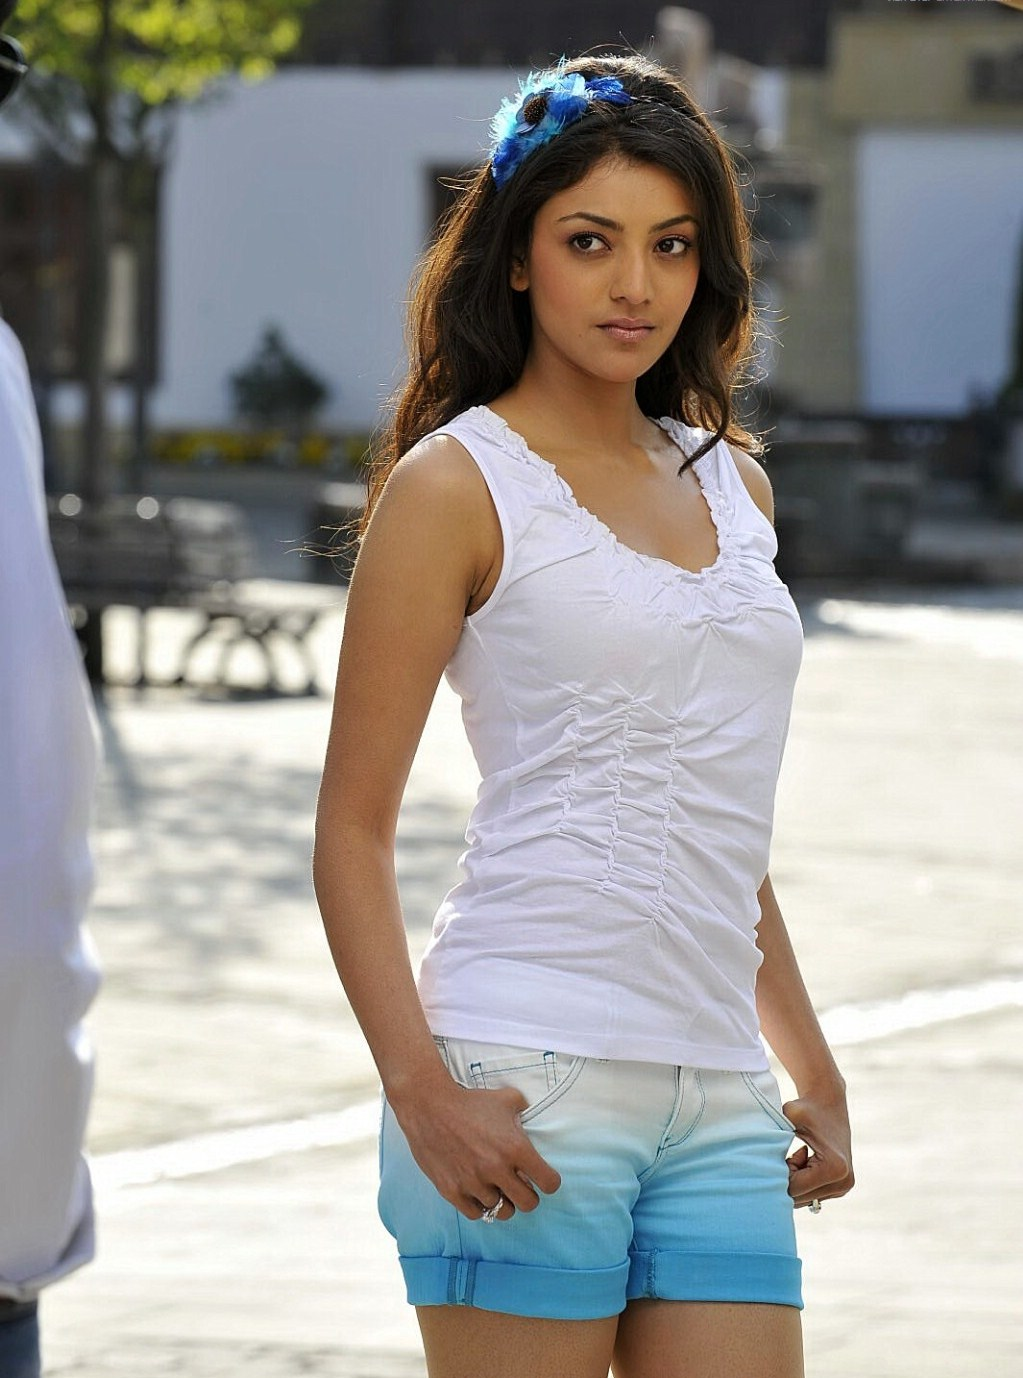 High Quality Bollywood Celebrity Pictures: Kajal Aggarwal